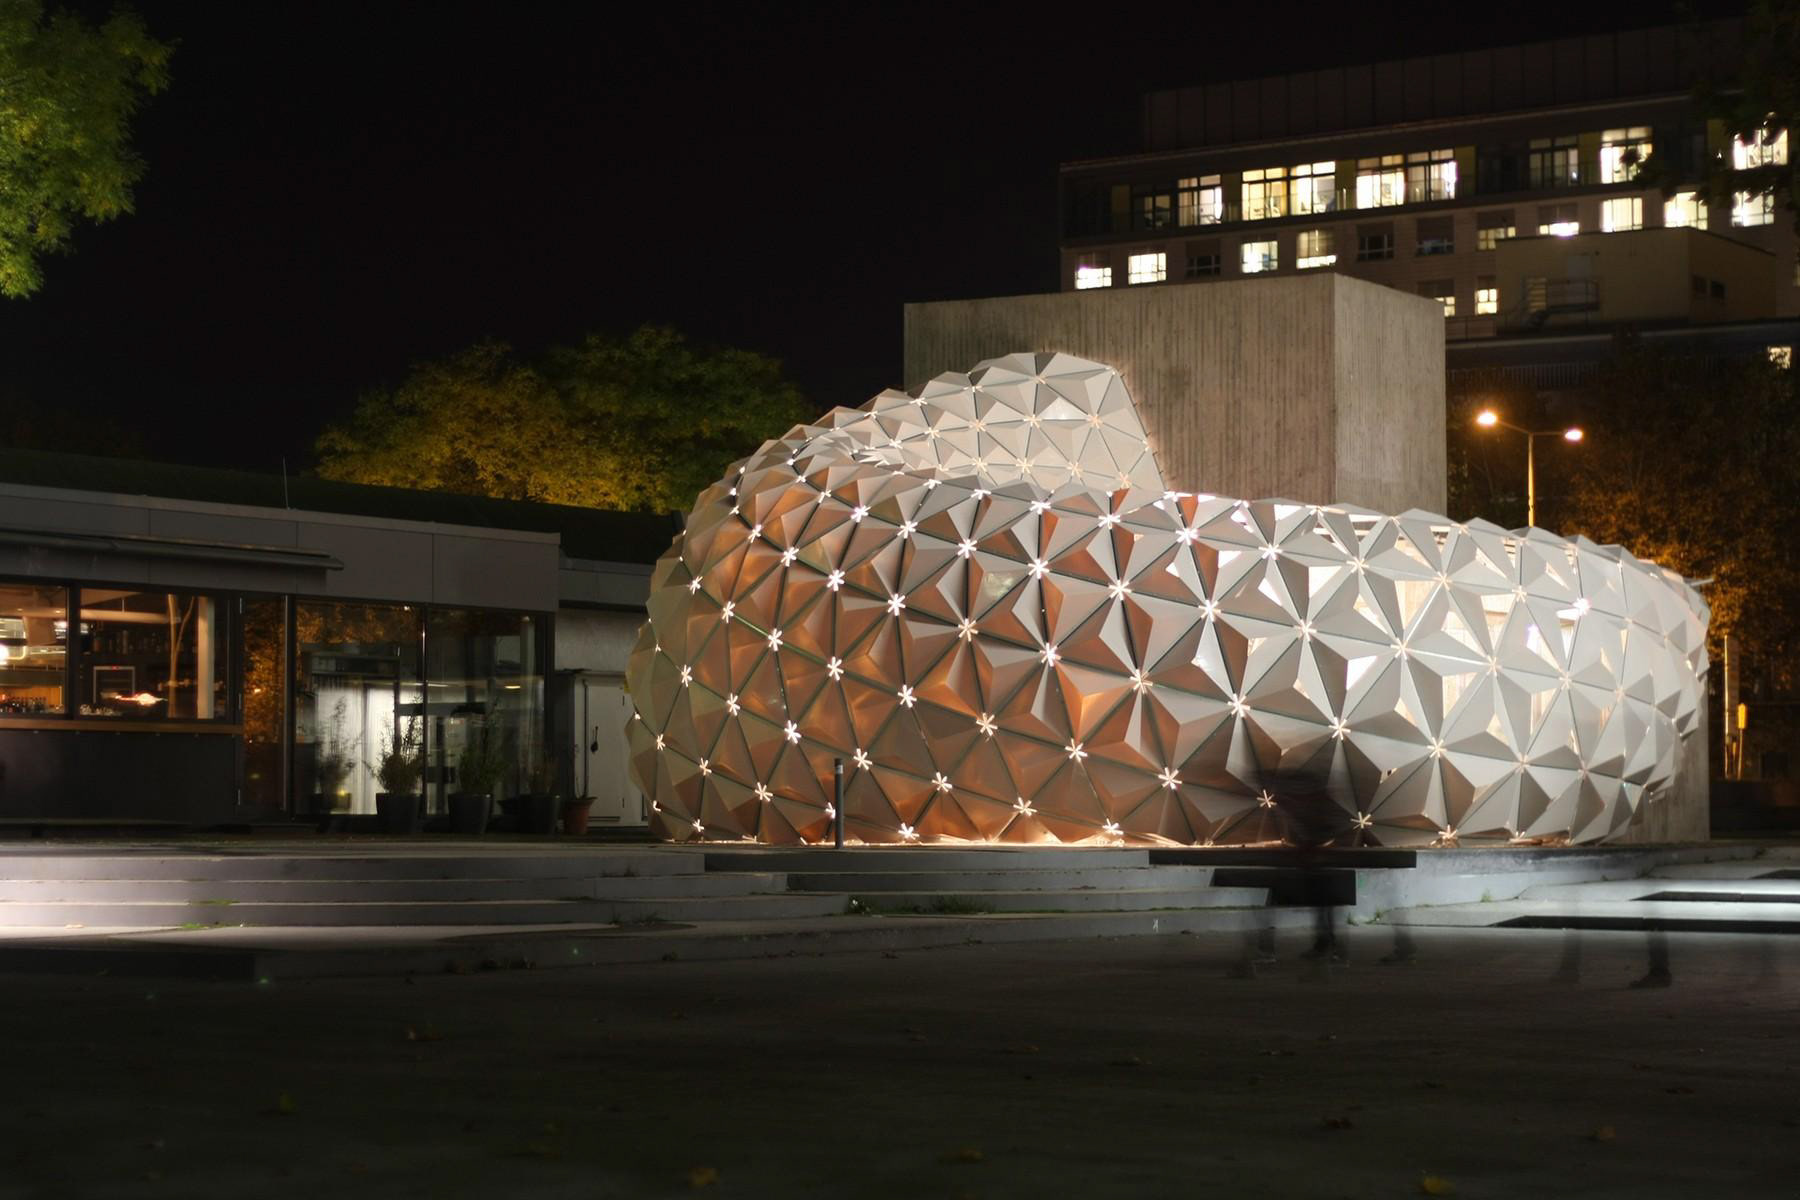 Trizone architecture parametric design durable recyclable facade the blueprint is based on a triangular net made upof mesh elements of varying sizes malvernweather Gallery